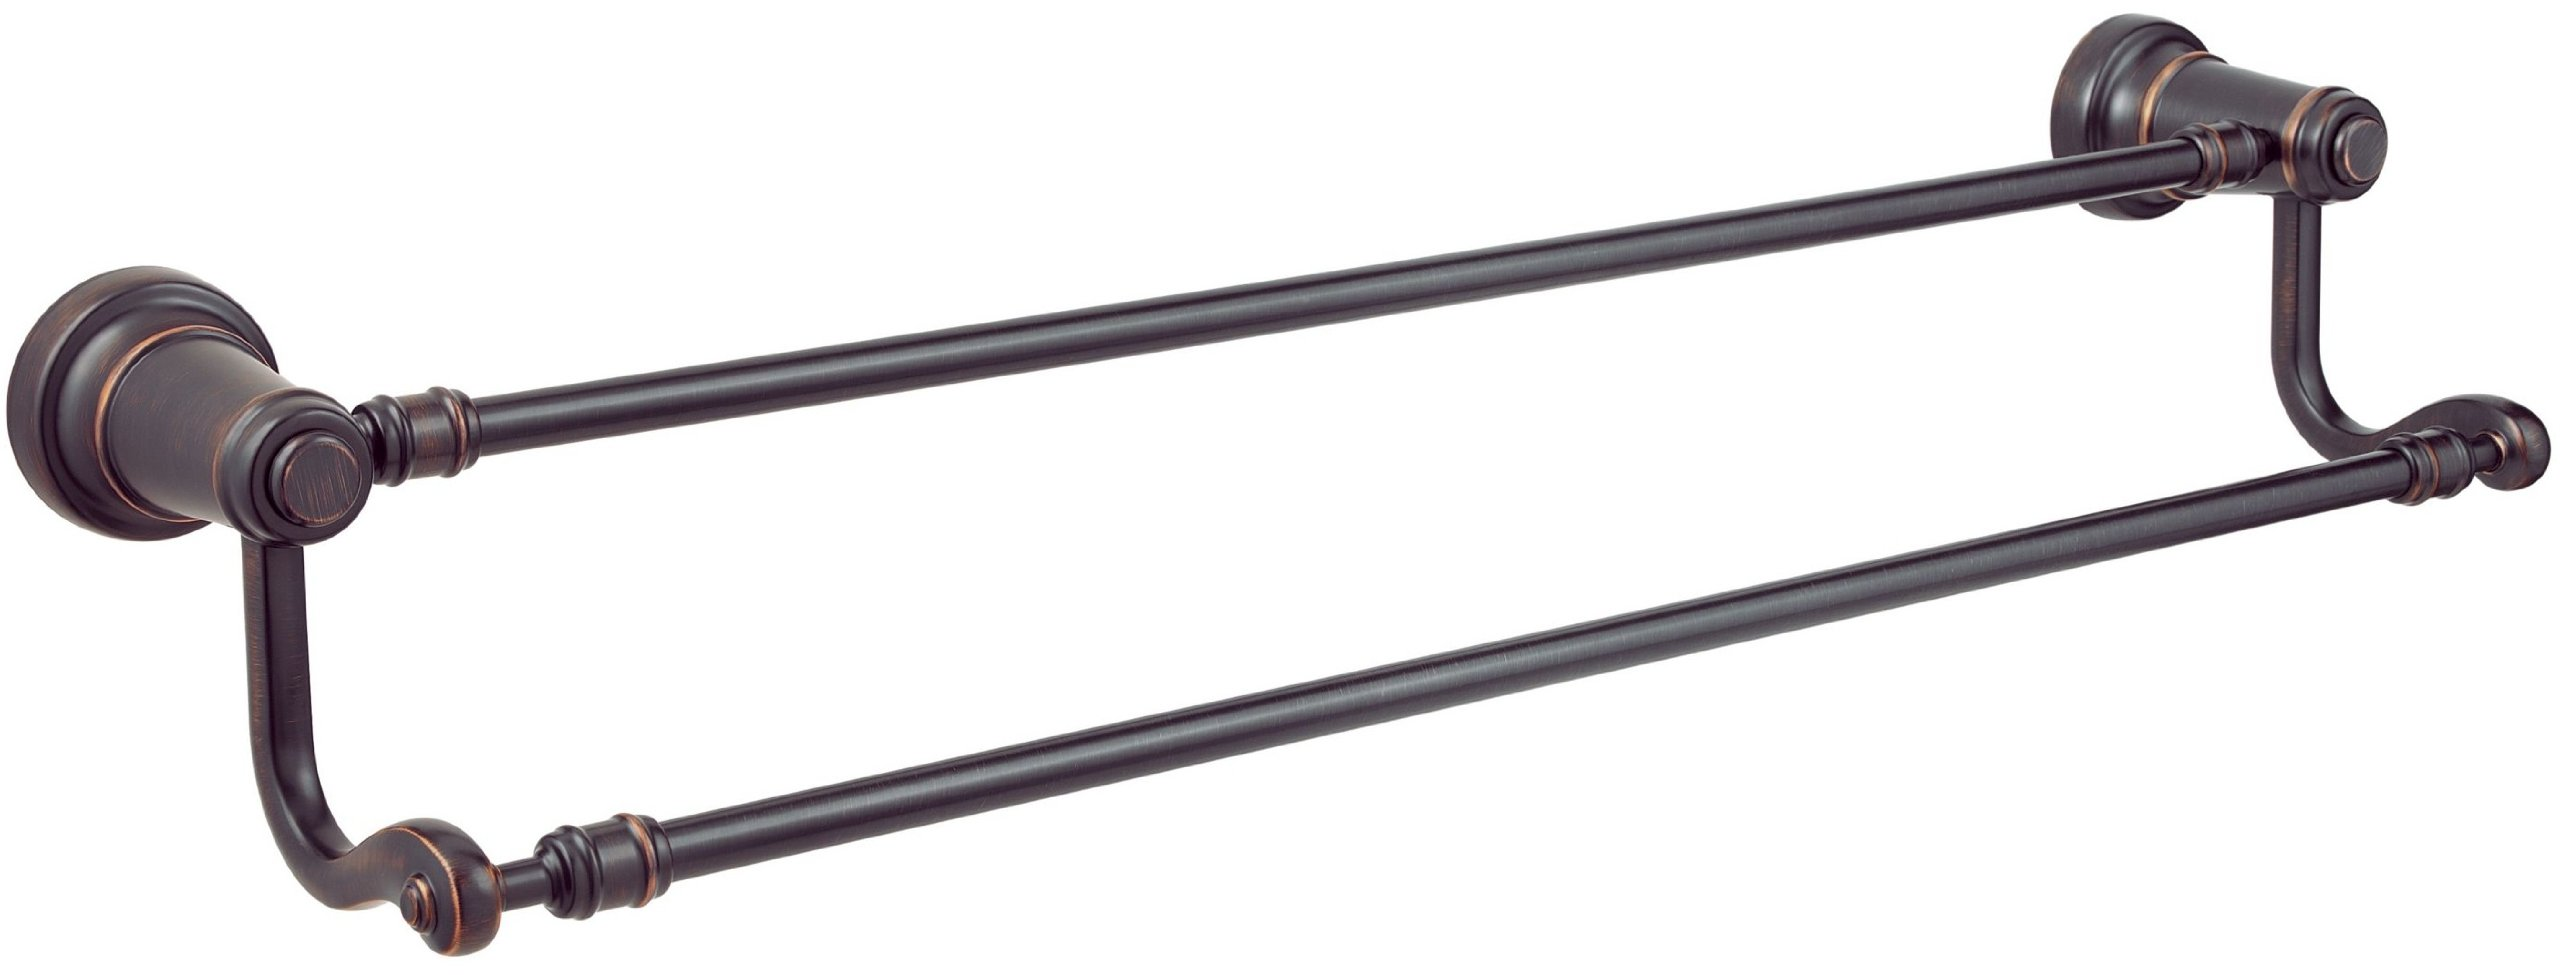 Pfister Ashfield 24'' Double Towel Bar, Tuscan Bronze by Pfister